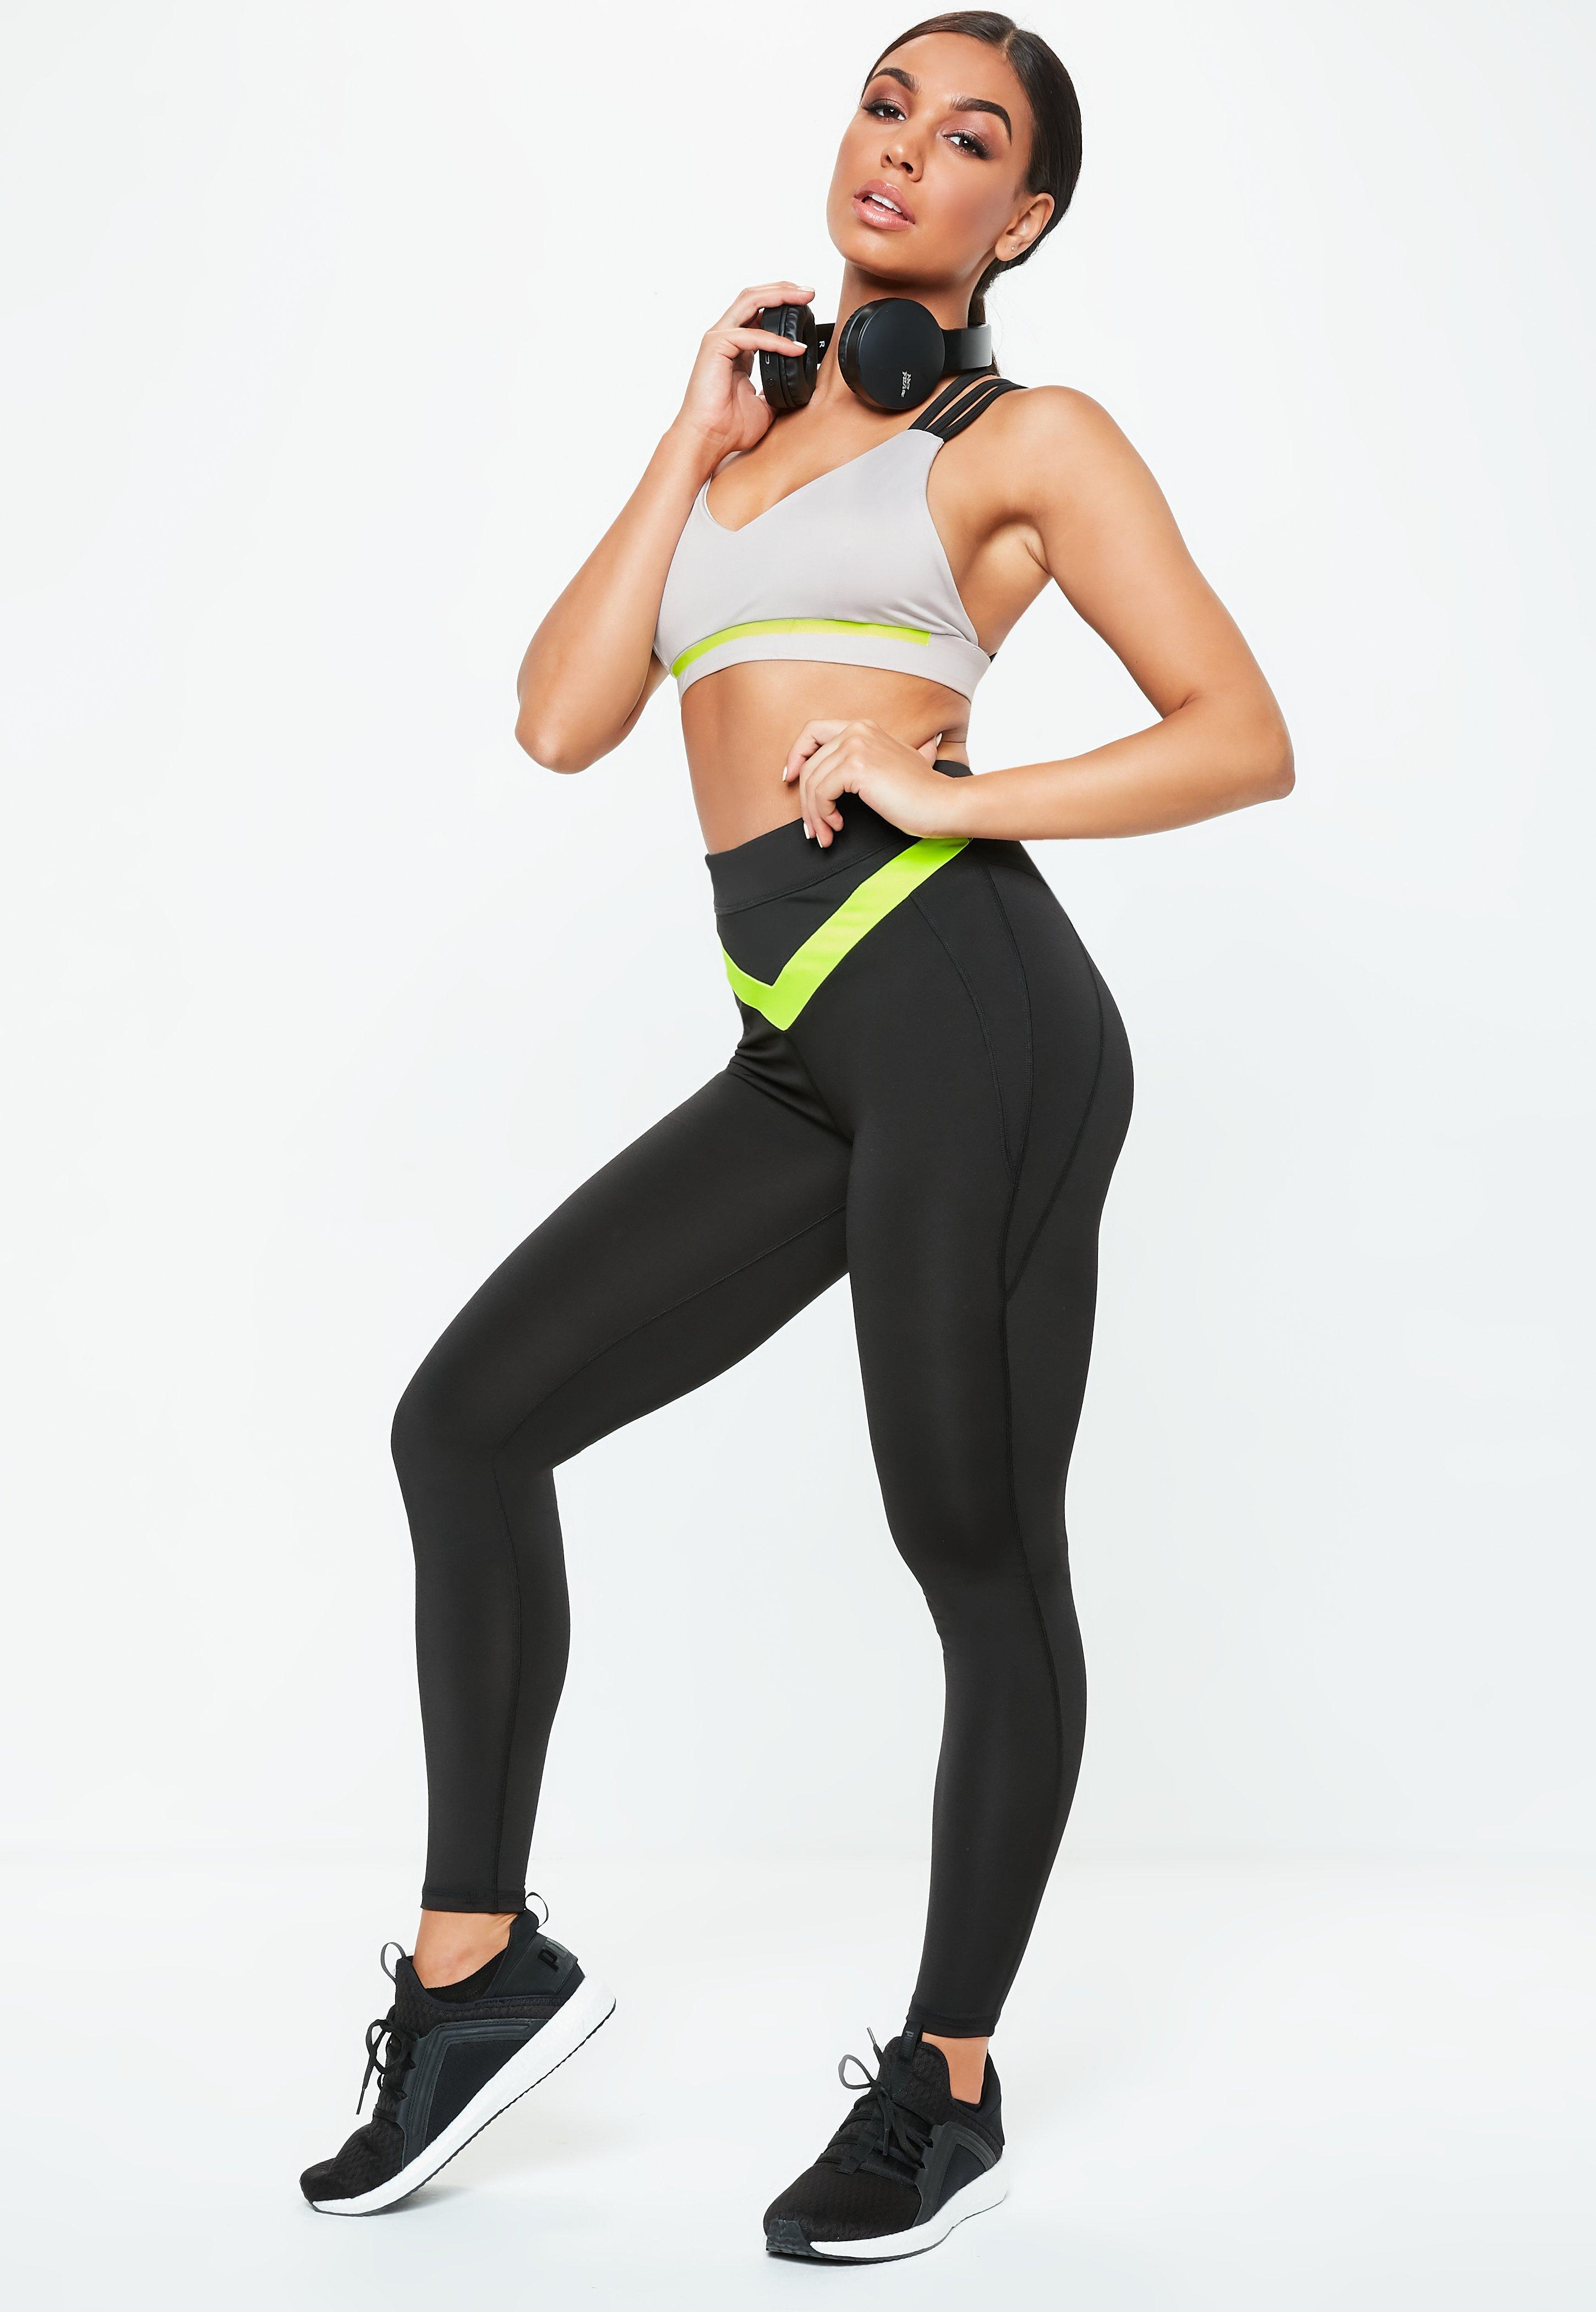 b7dca062c5d47 Lyst - Missguided Active Black & Lime Stripe Full Length Gym ...